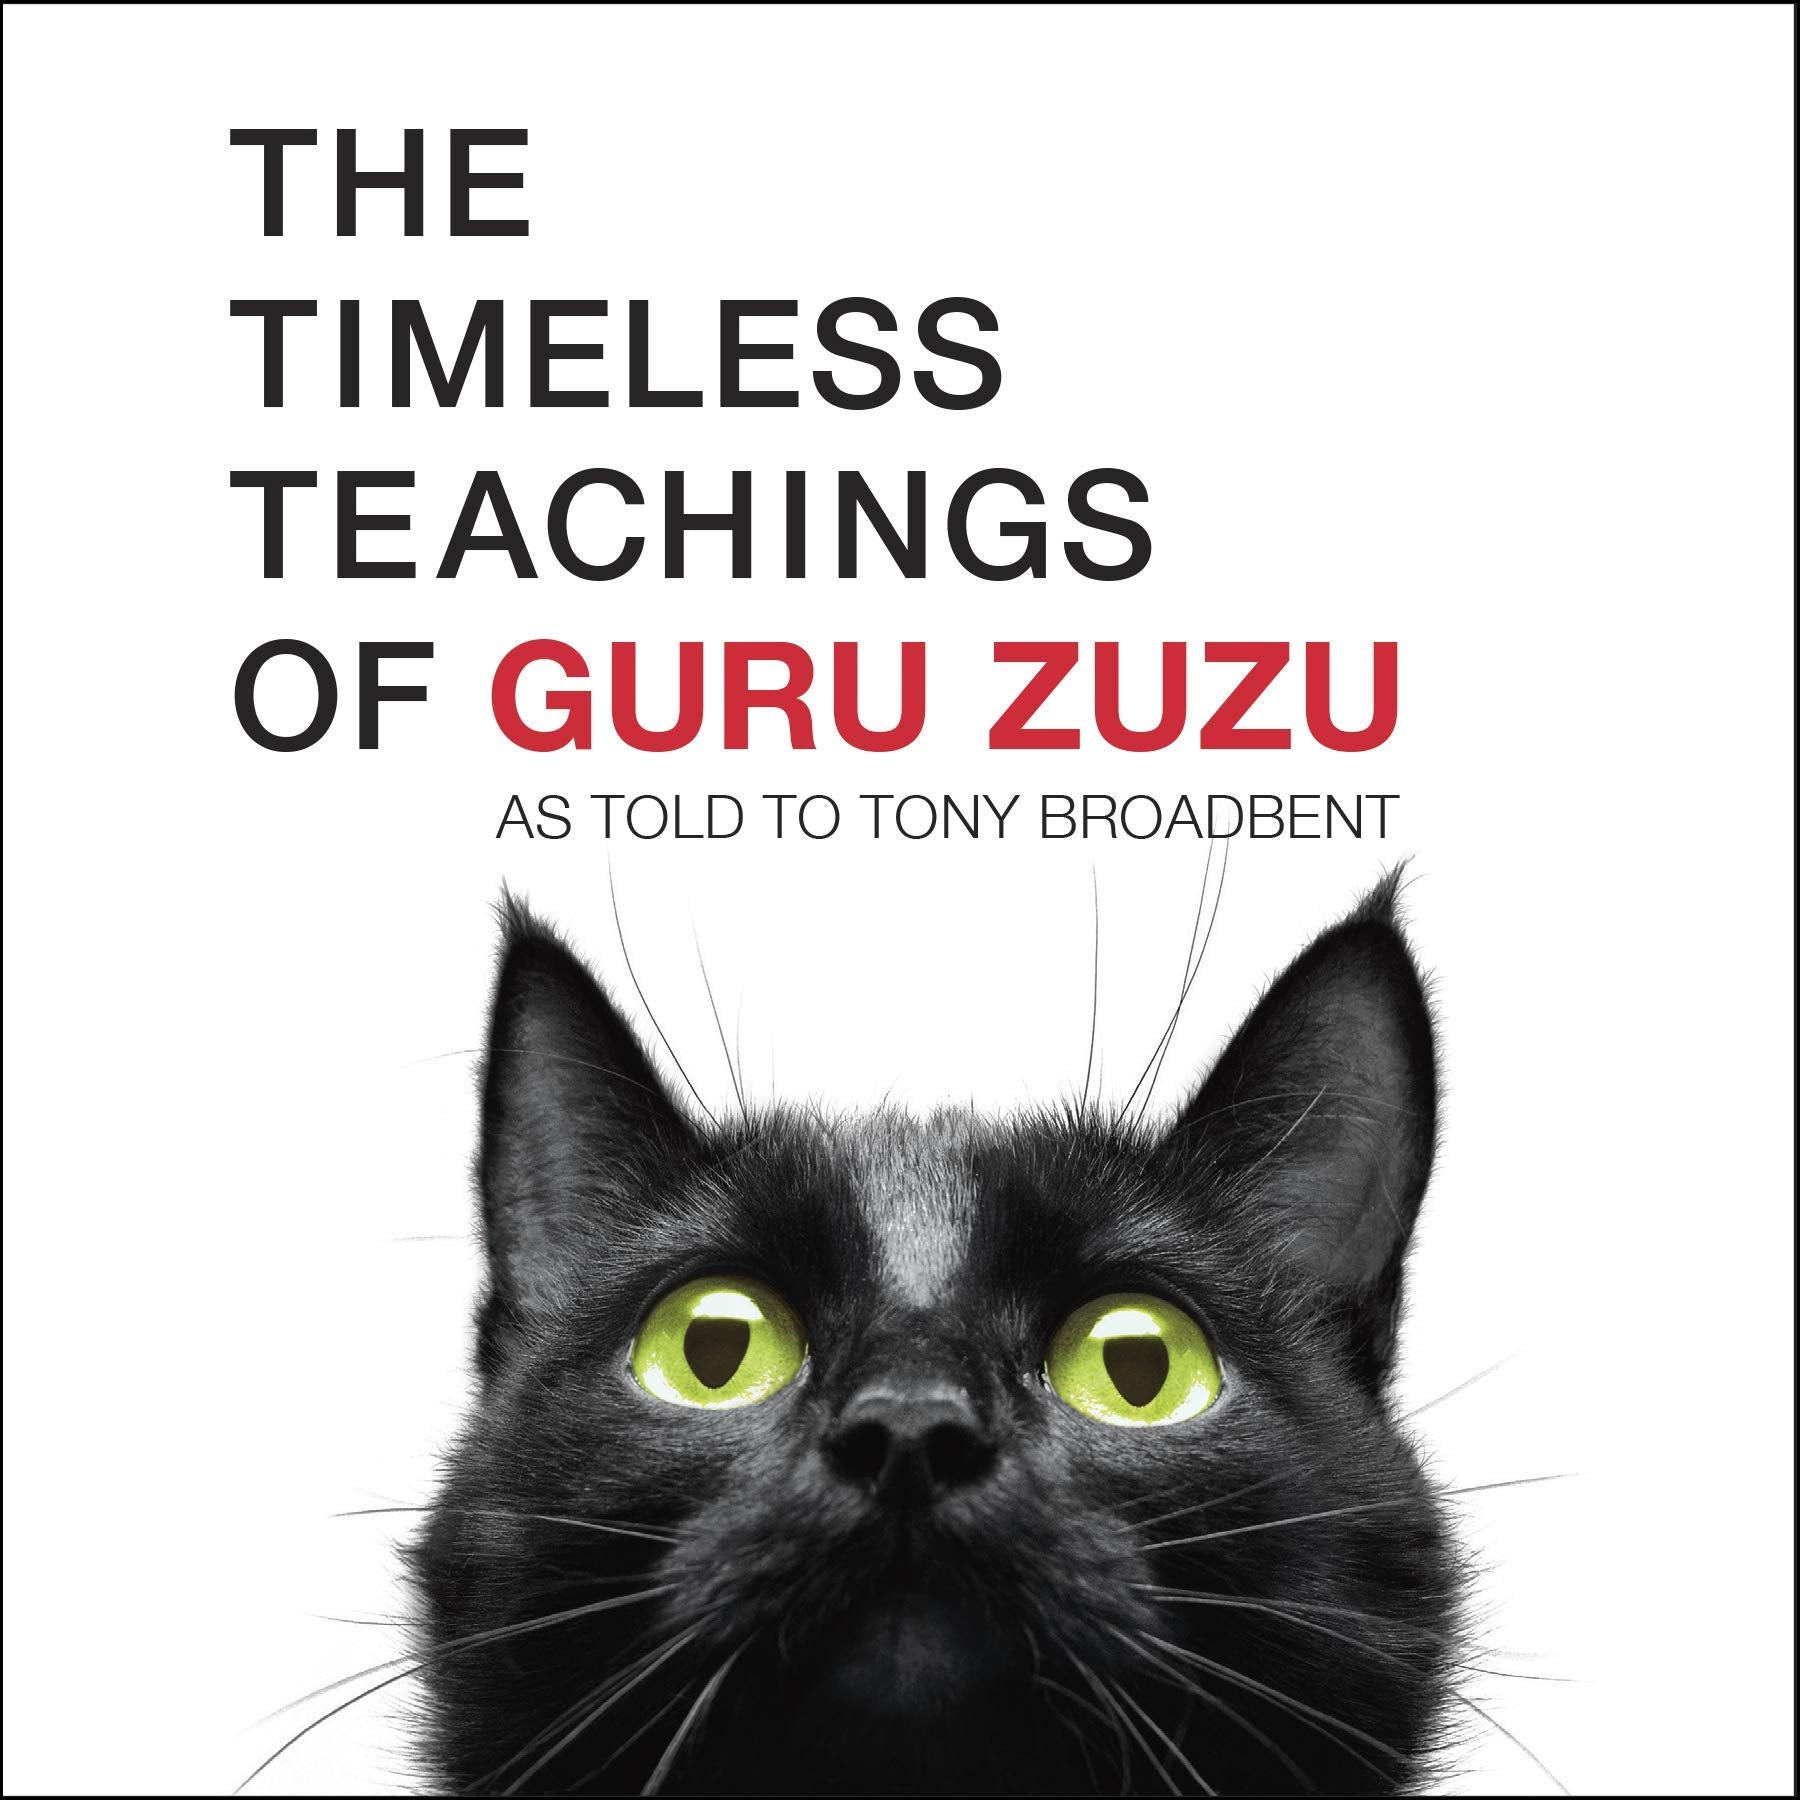 the timeless teachings of guru zuzu book